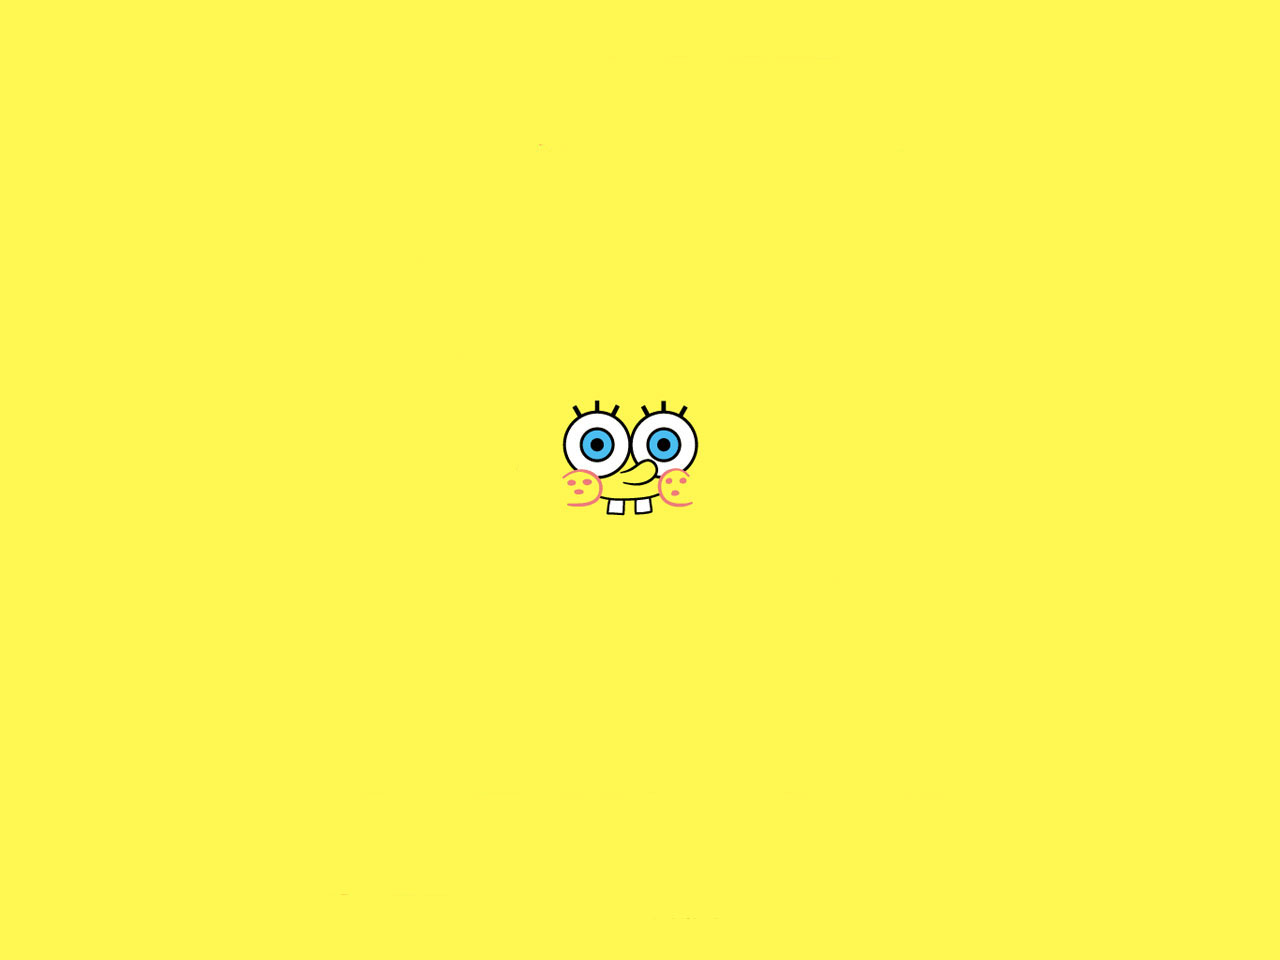 Love Cars Wallpapers Spongebob Wallpaper Yellow 6471 Wallpaper Walldiskpaper